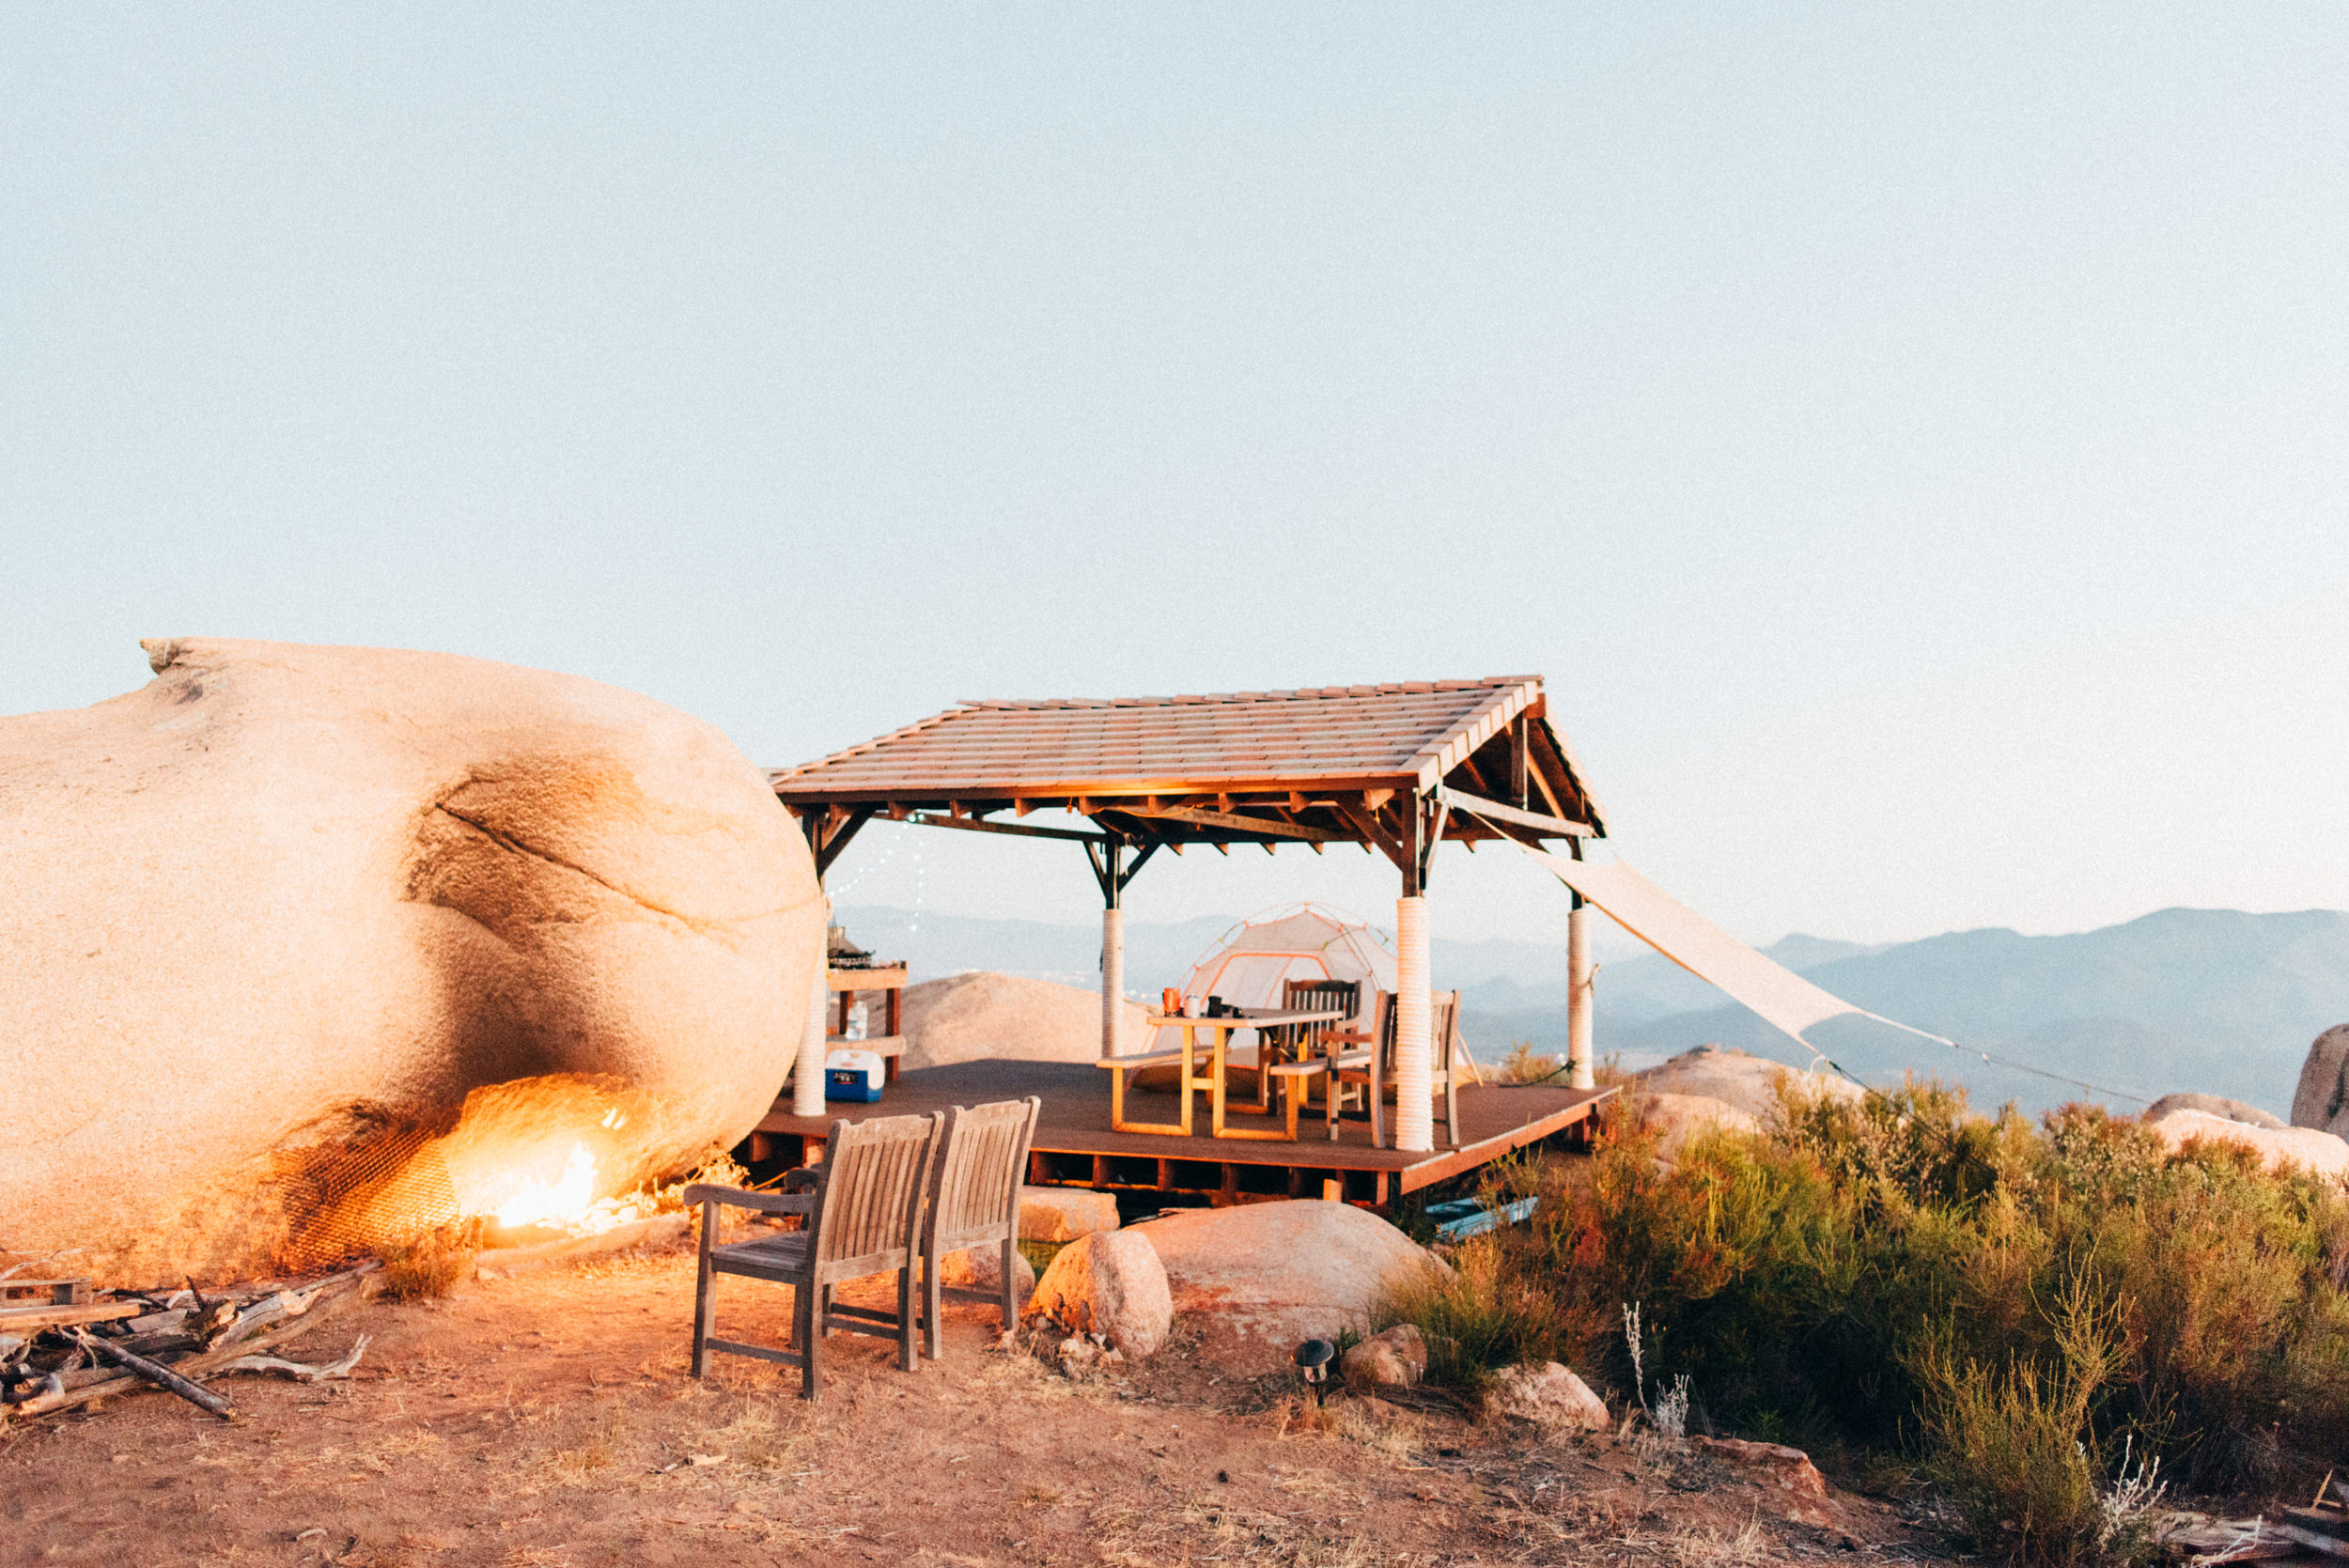 Our kind of summer date night // pt 2 - Jamul, Ca.